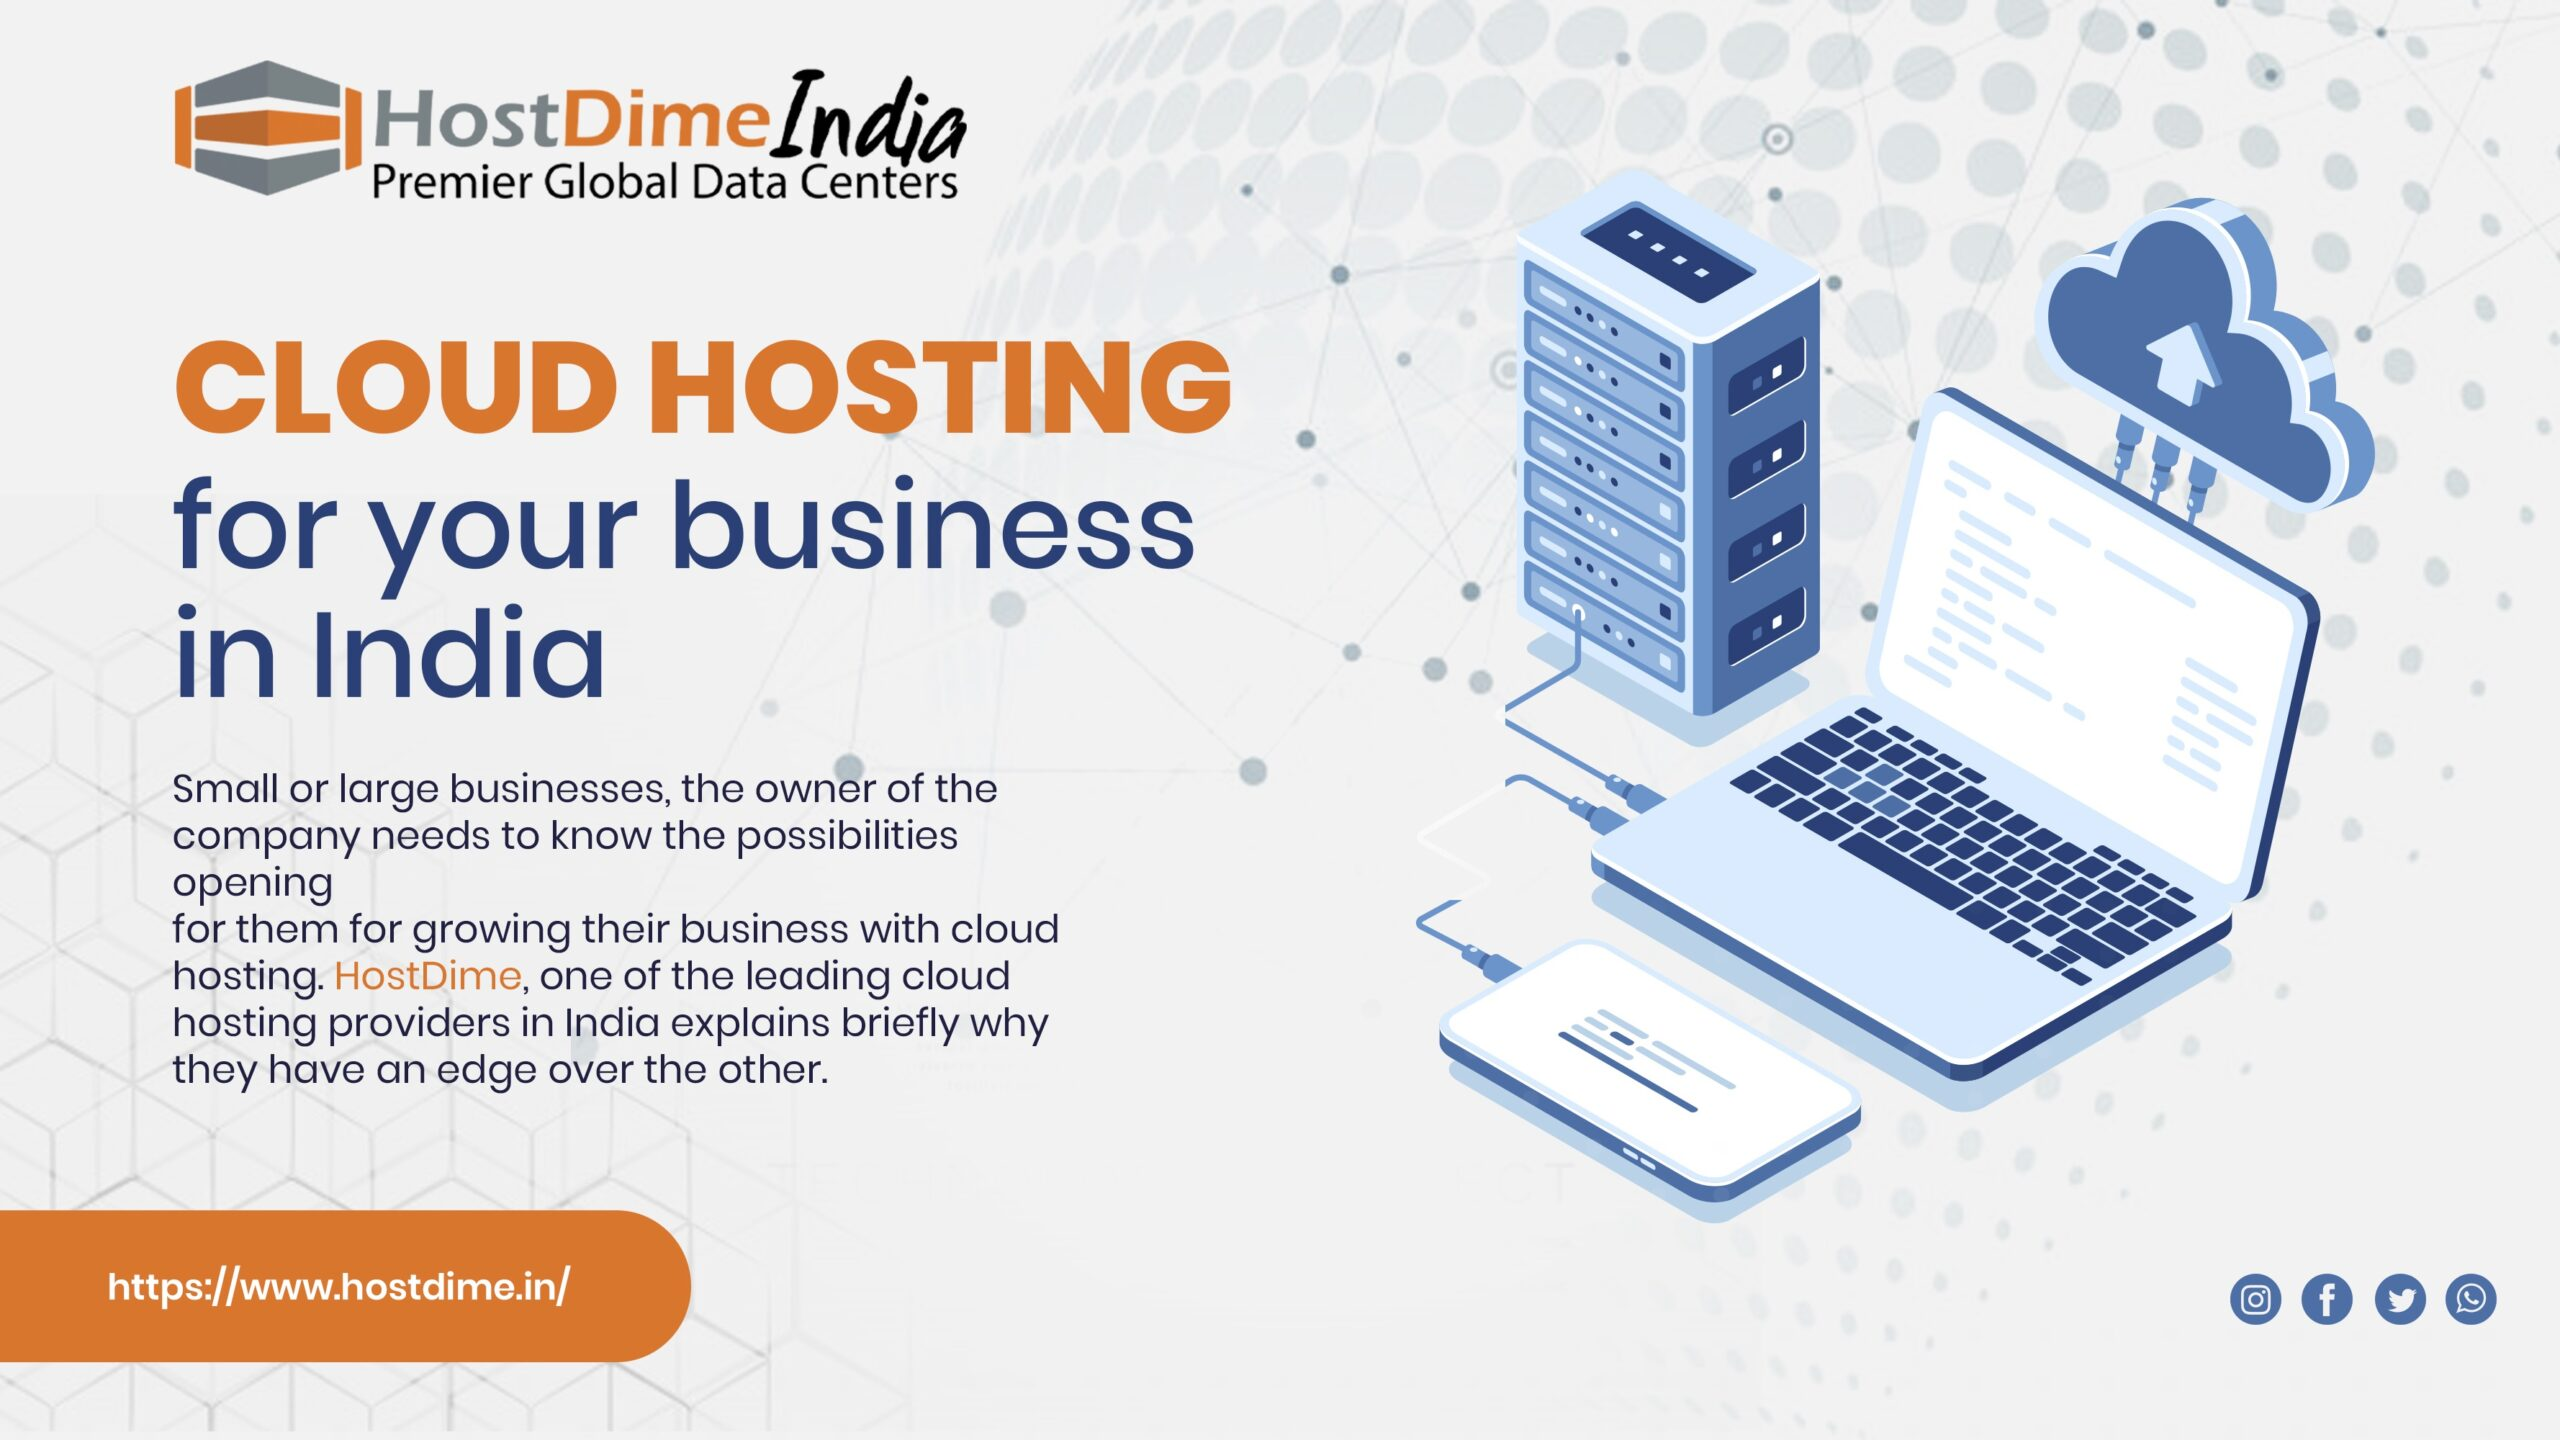 Cloud hosting for your business in India